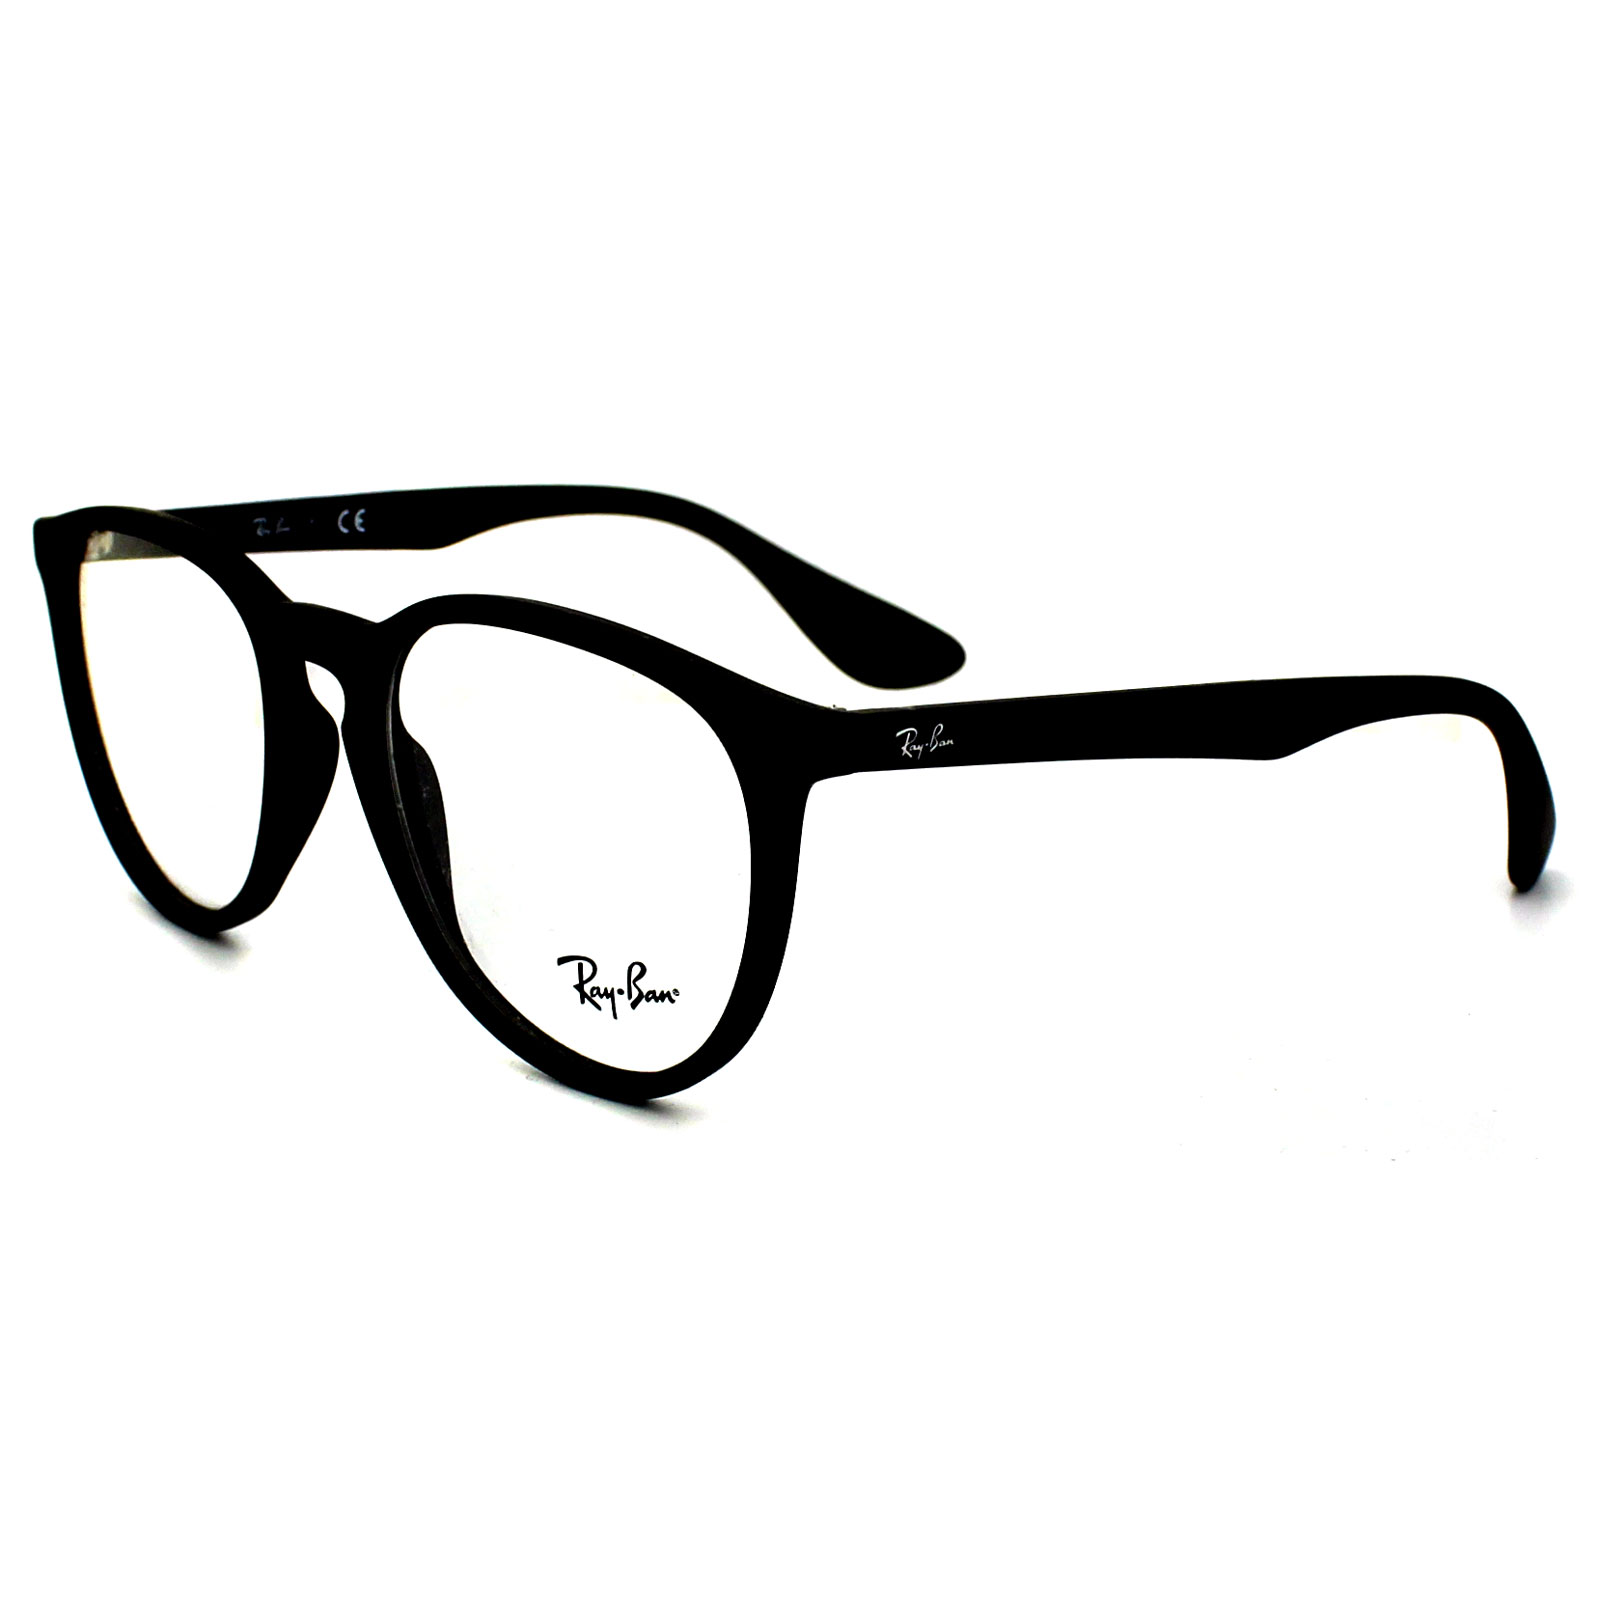 Cheap Ray-Ban 7046 Glasses Frames